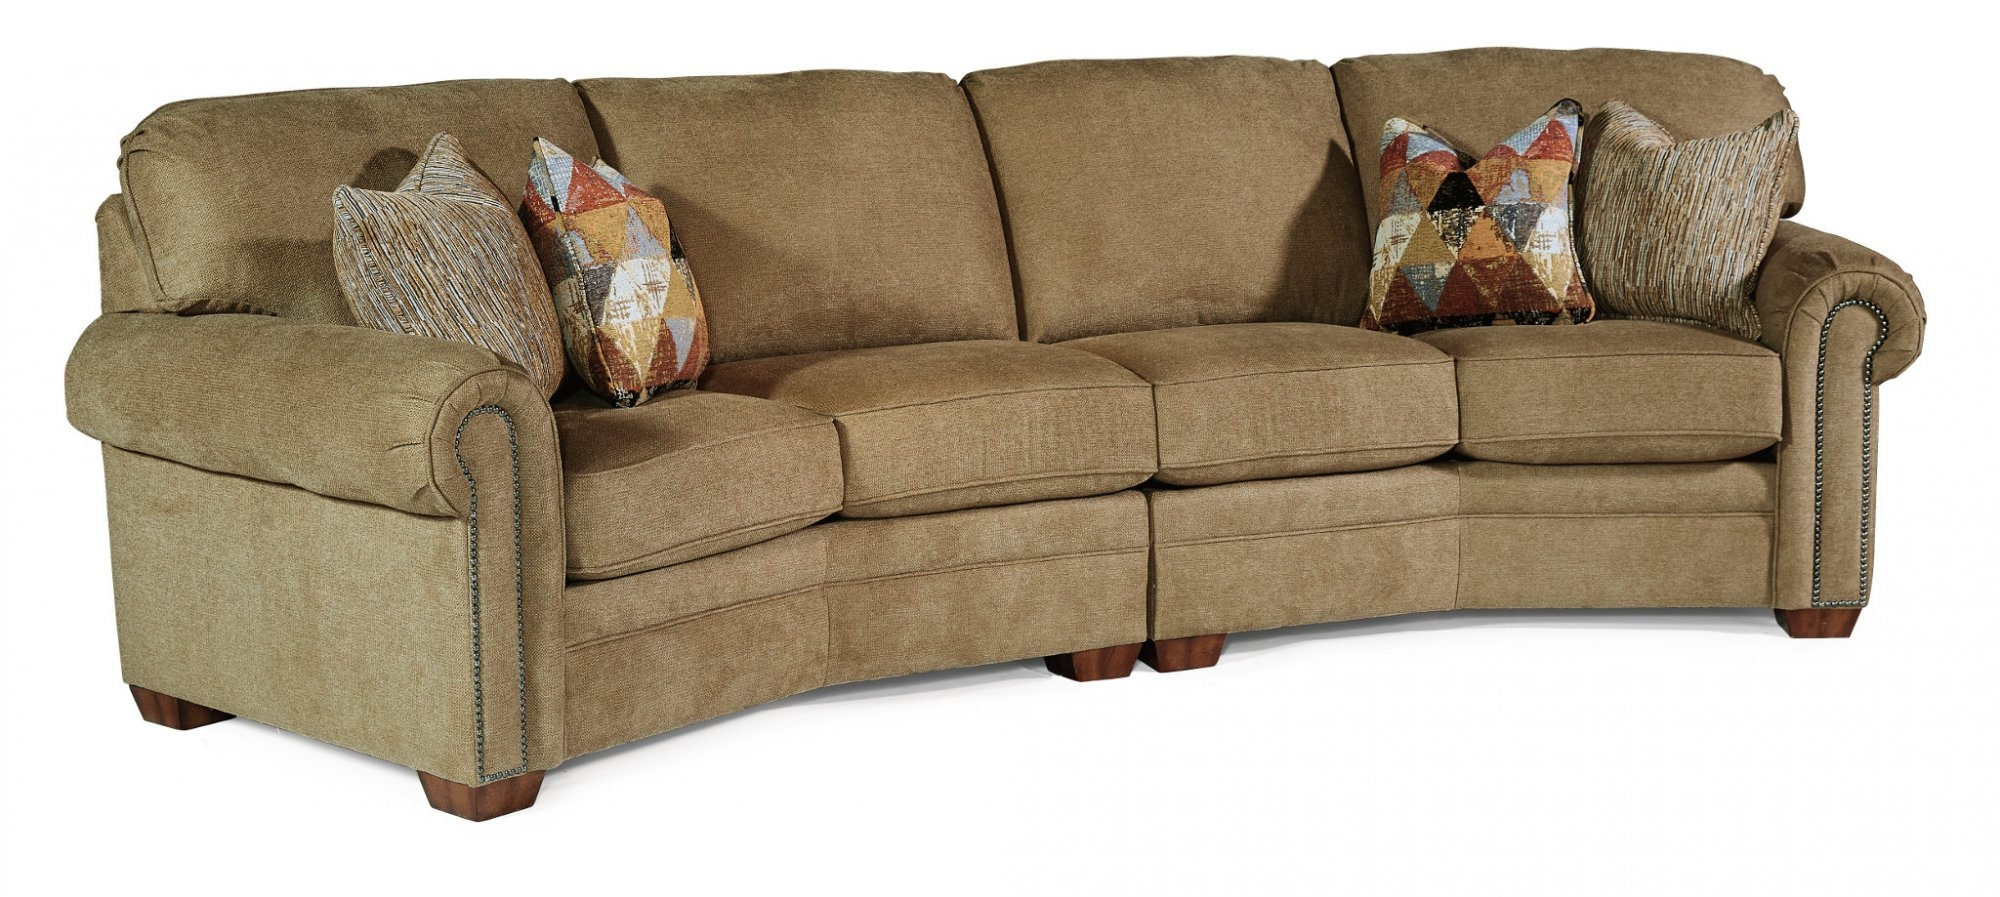 Conversation sofa sectional conversation sofa sectional for Conversation sofa